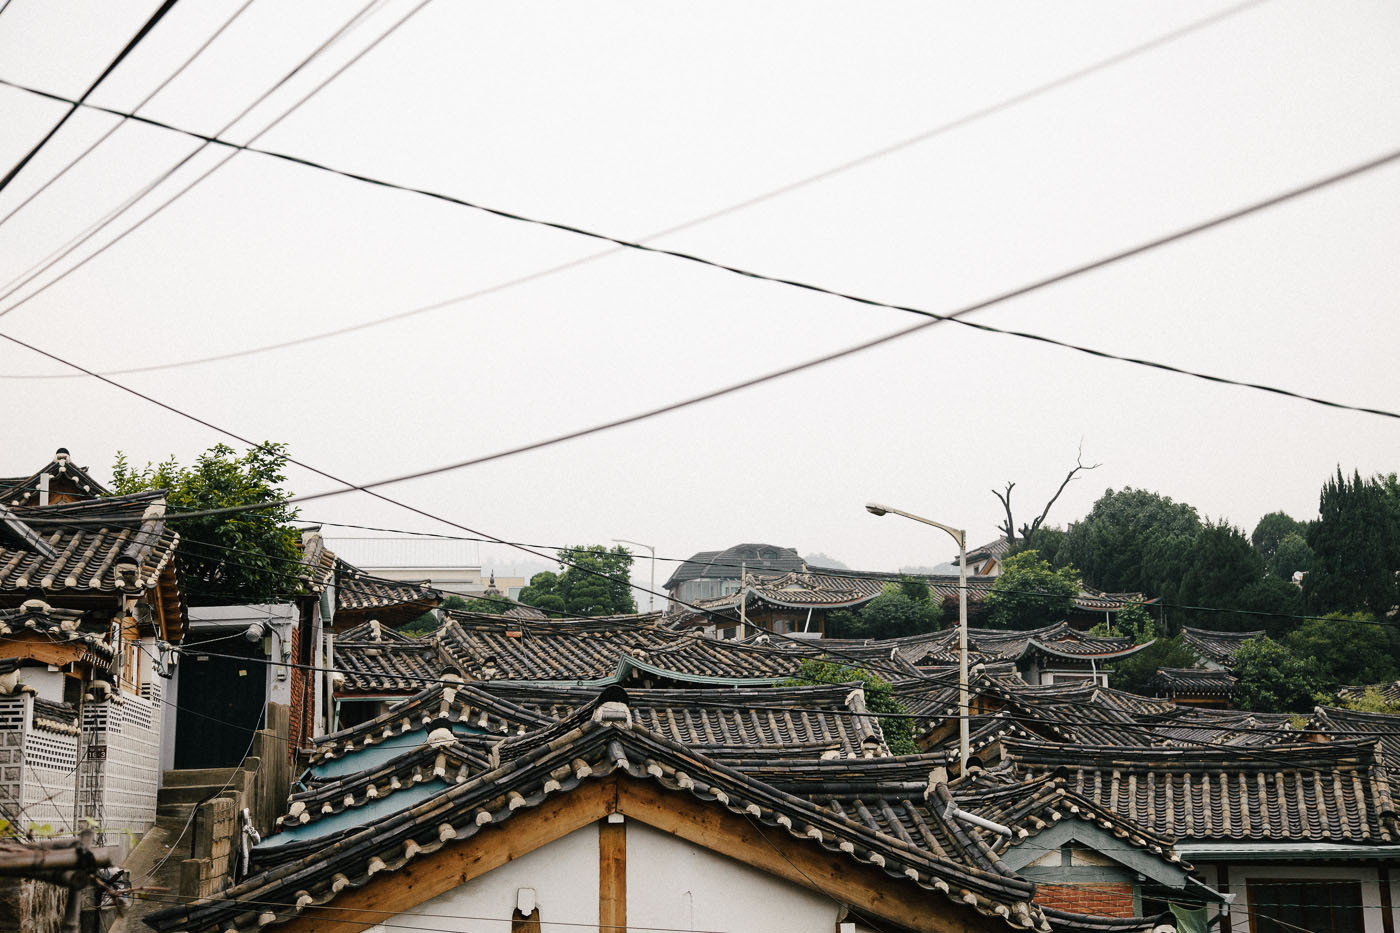 Rooftops in Bukchon, Seoul, South Korea